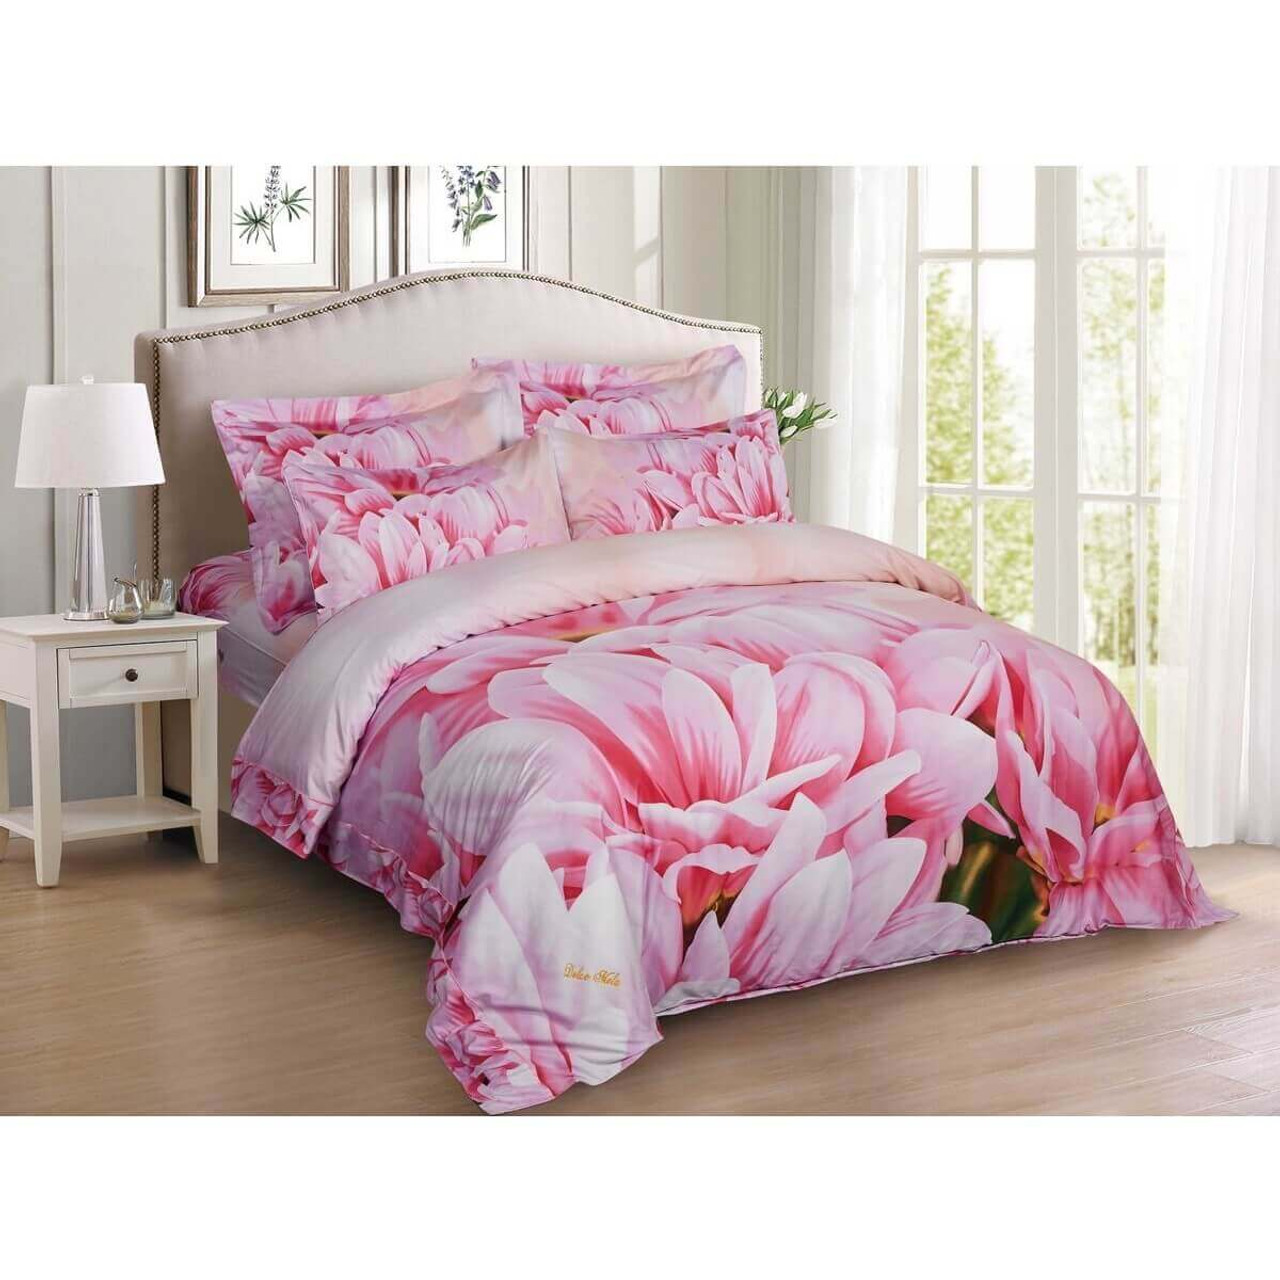 Queen size Floral Bedding, Dolce Mela - May DM701Q  Dropship